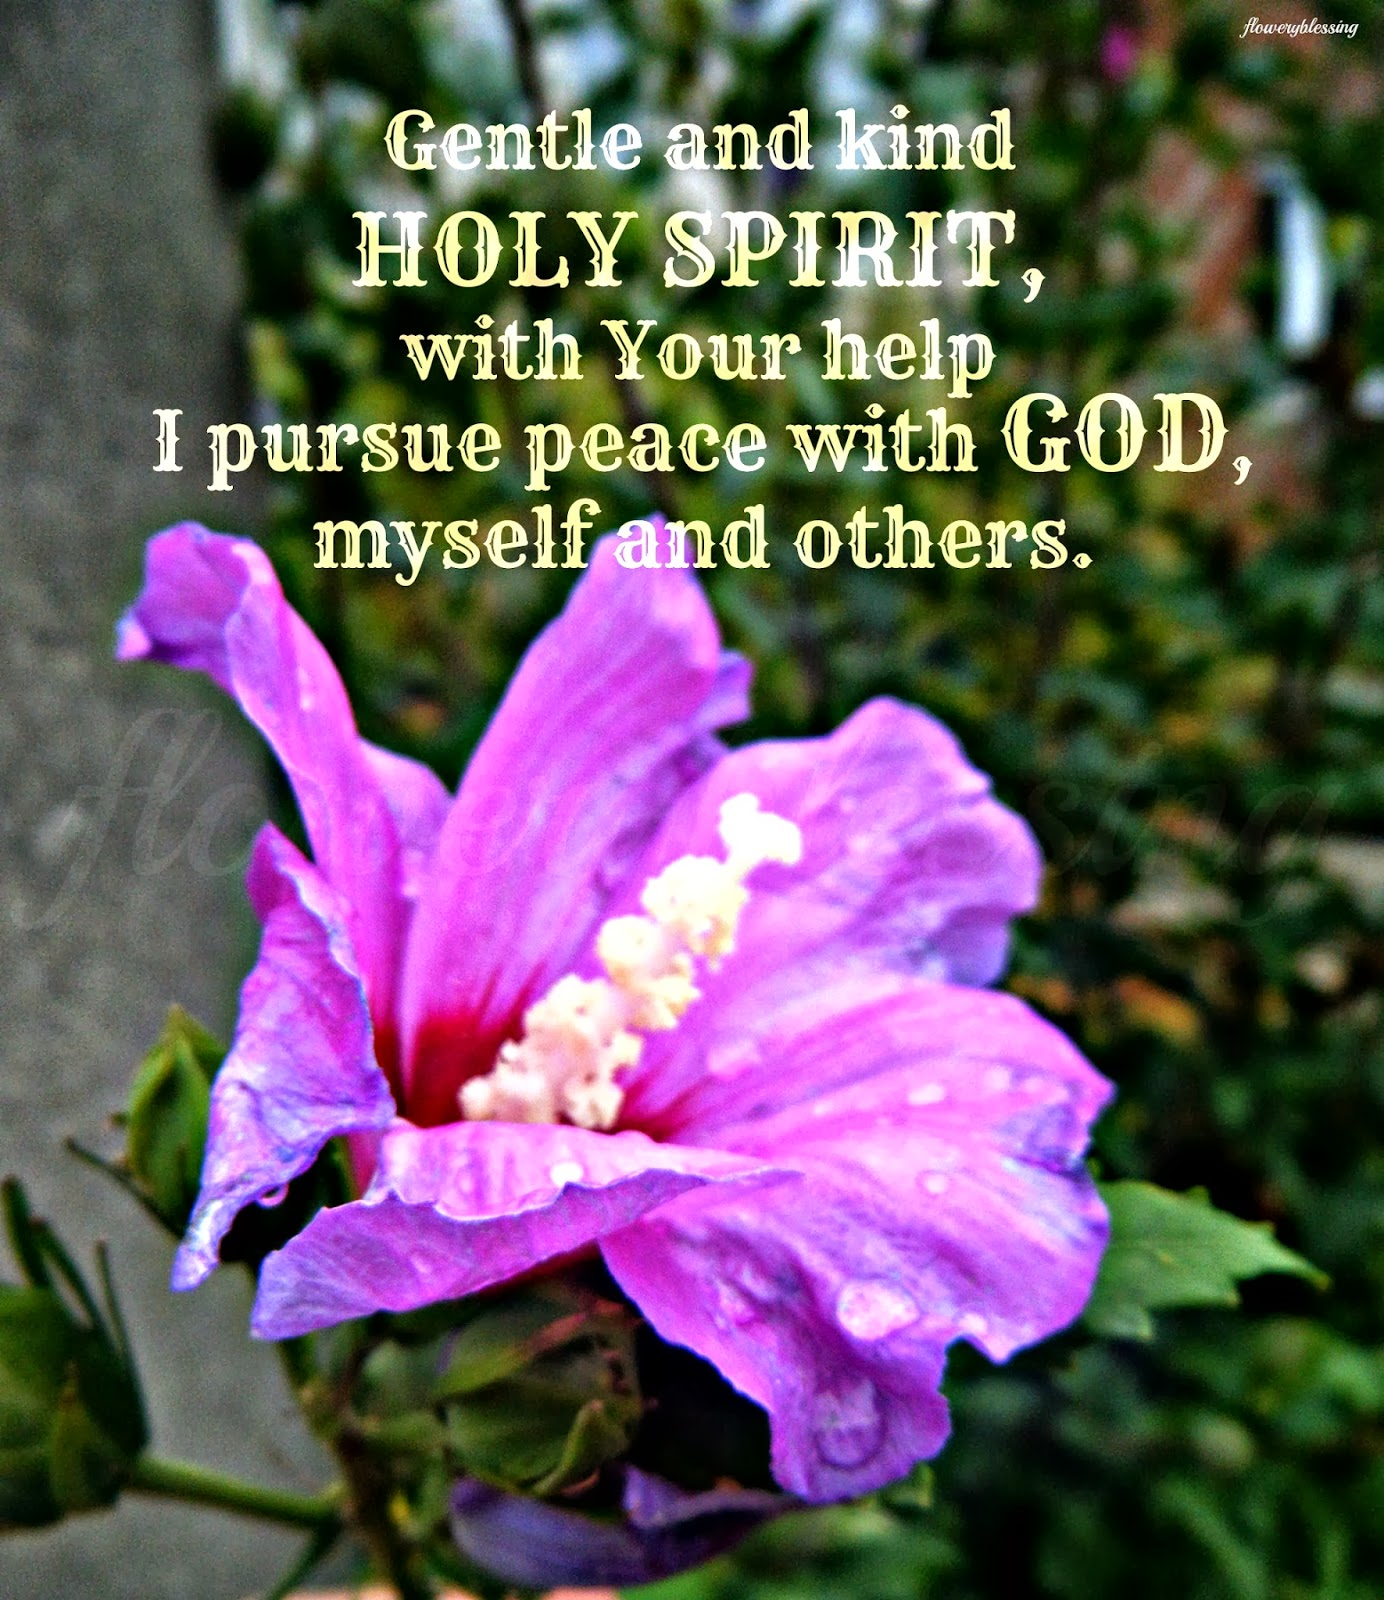 Flowery Blessing Gentle and kind HOLY SPIRIT with Your help I pursue peace